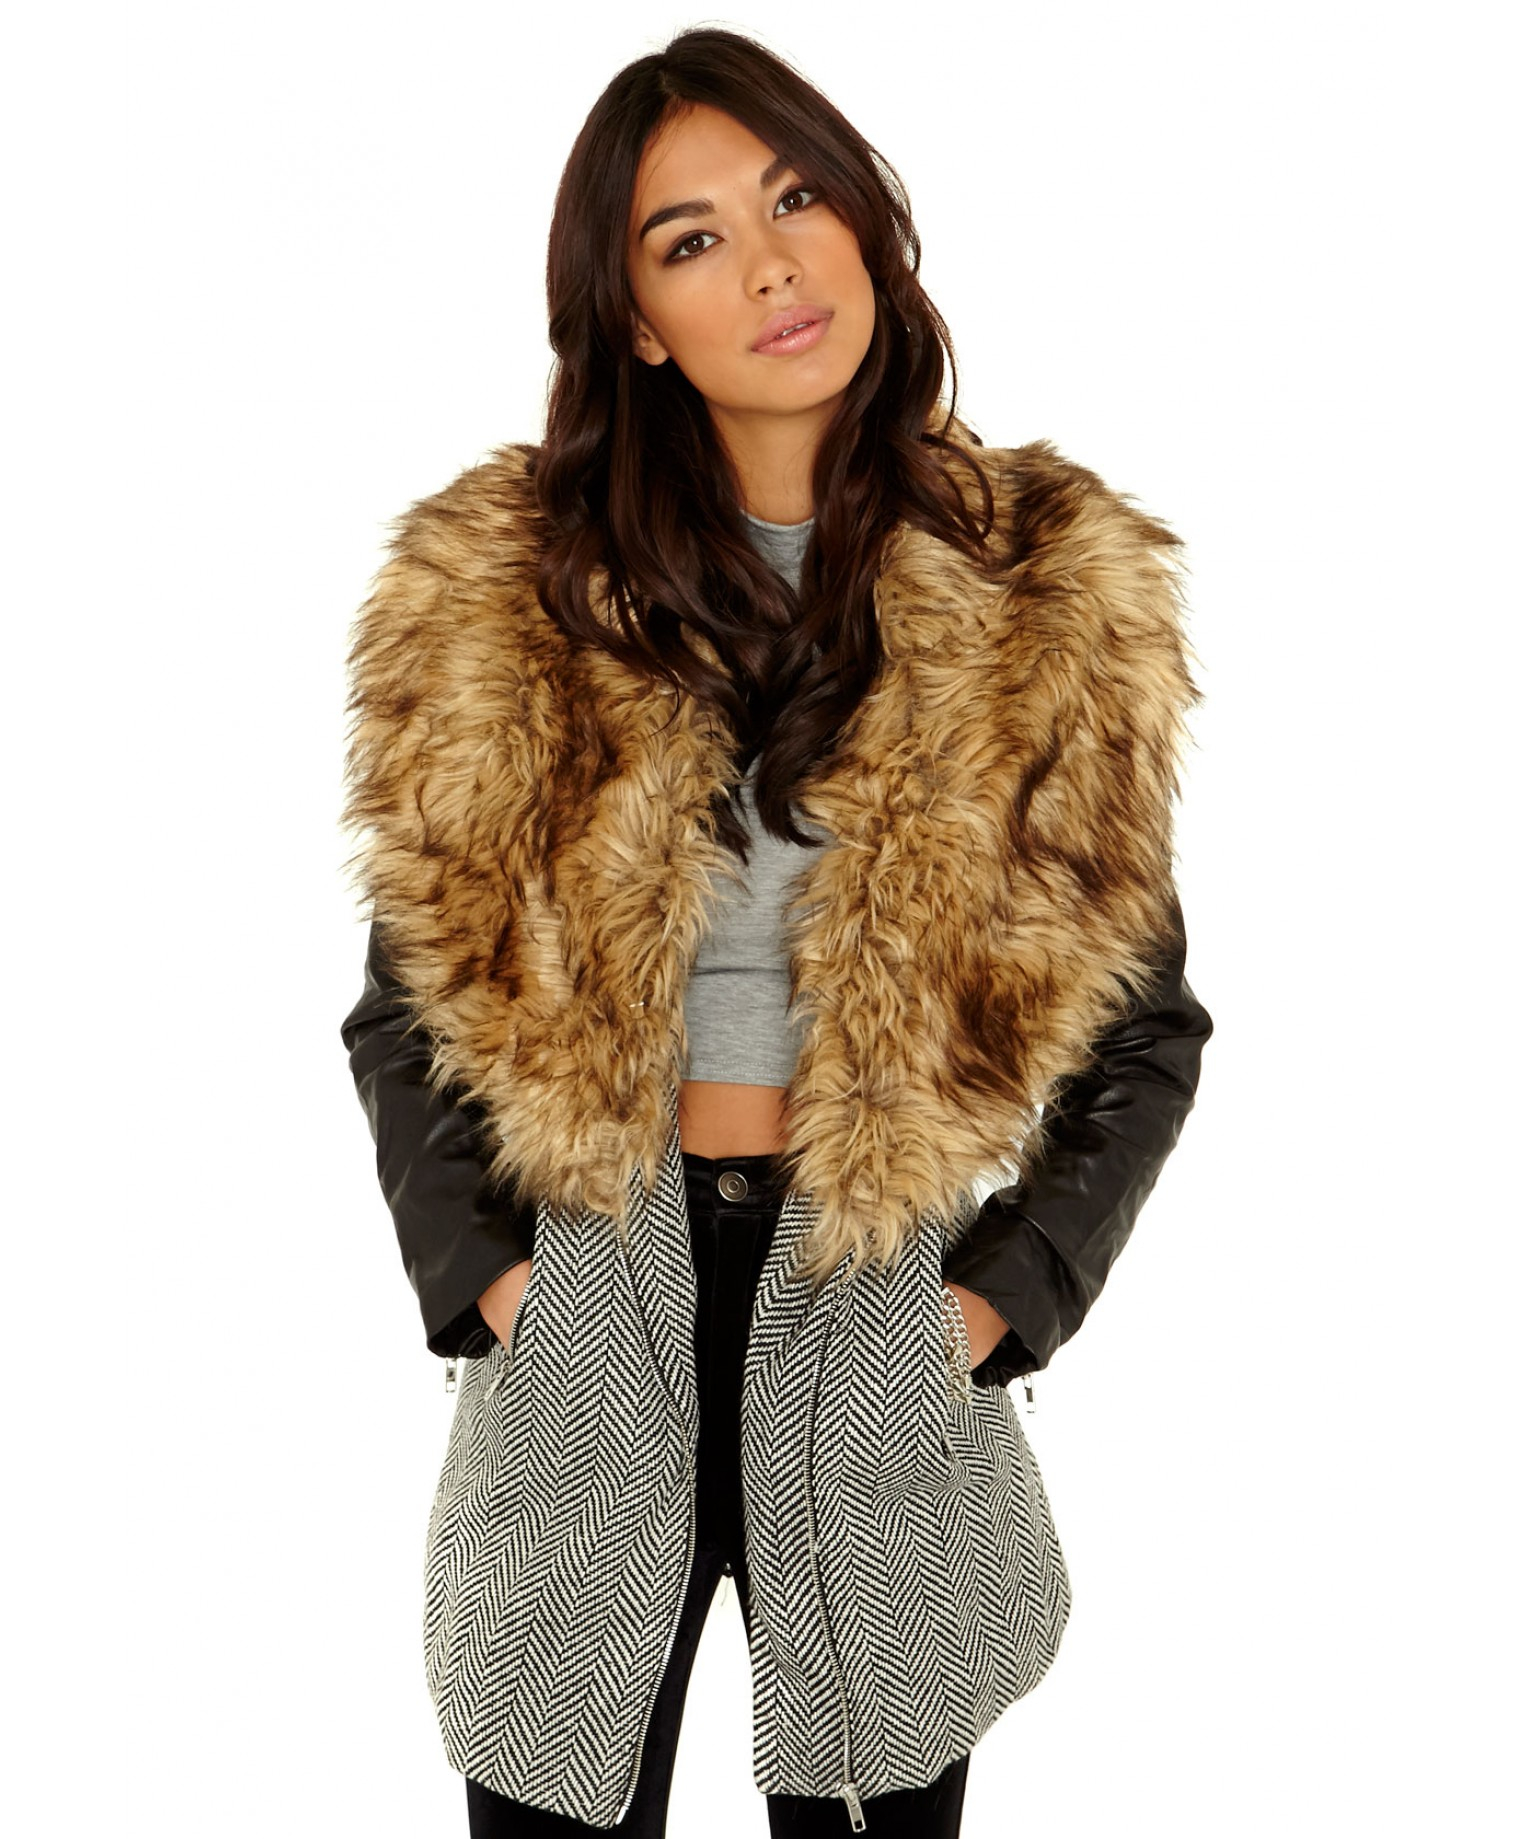 Coat with fur collar – Modern fashion jacket photo blog